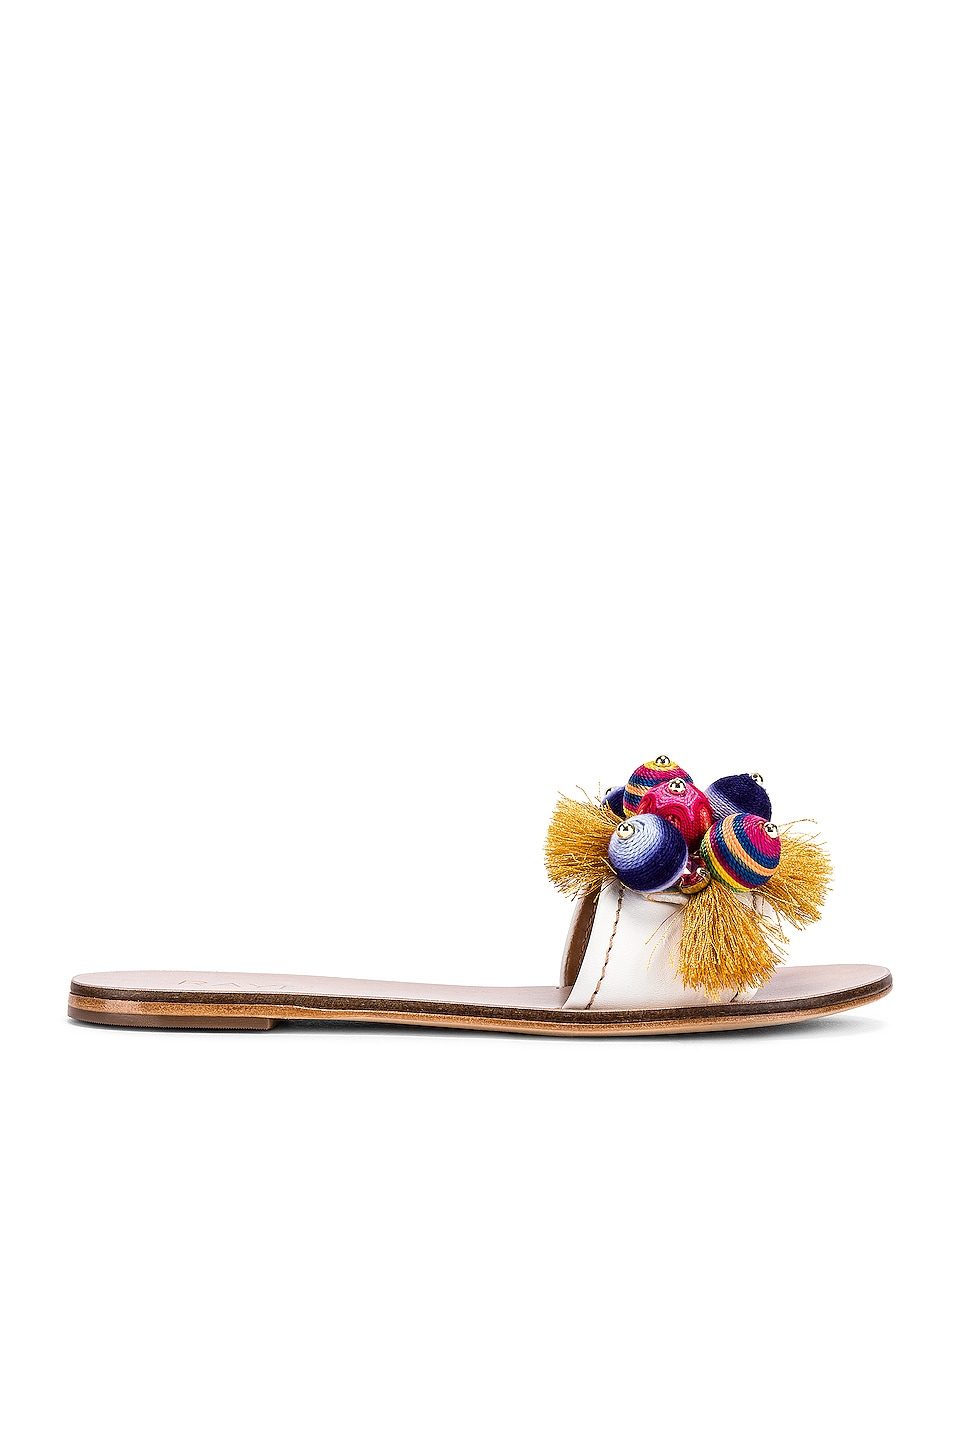 RAYE Island Sandal in Multi